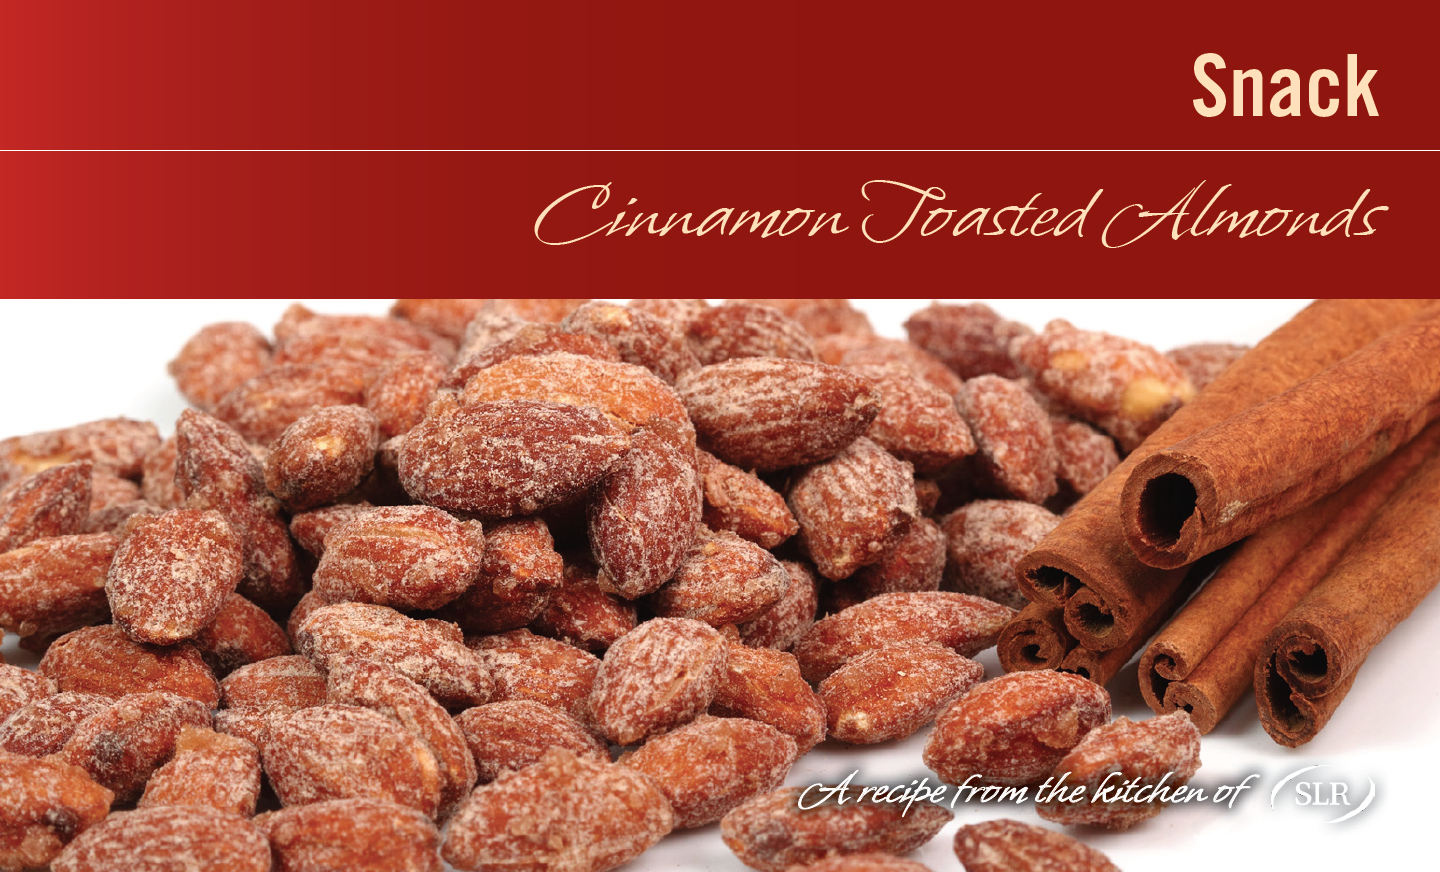 Cinnamon Spiced Almonds recipe card